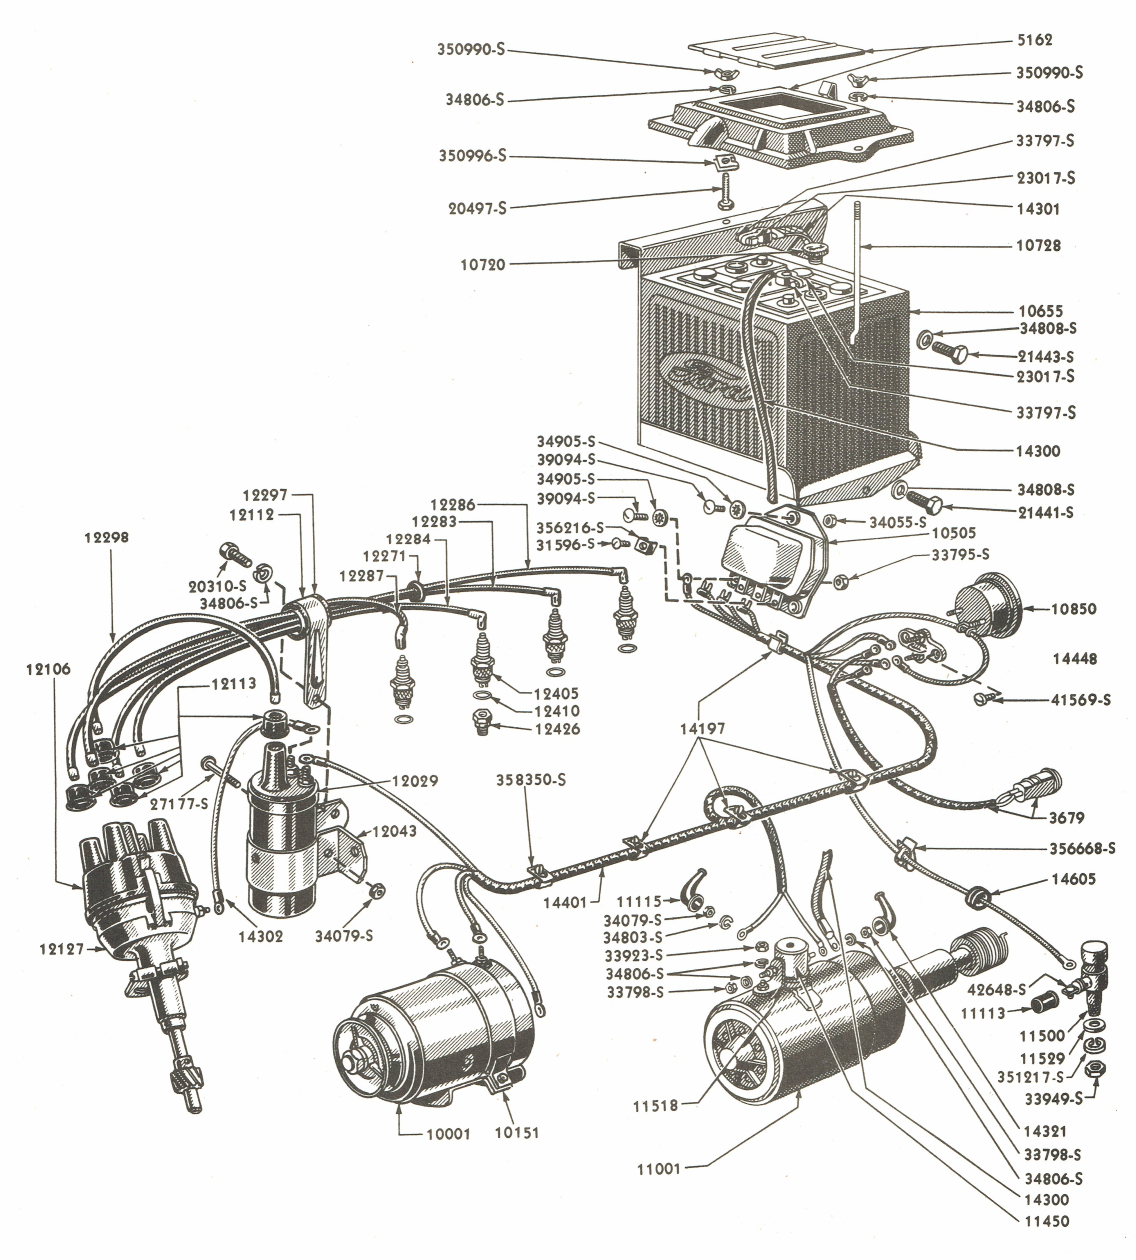 Electrical Wiring Parts For Ford 8N Tractors (Asn 263843) - Ford 8N Wiring Diagram